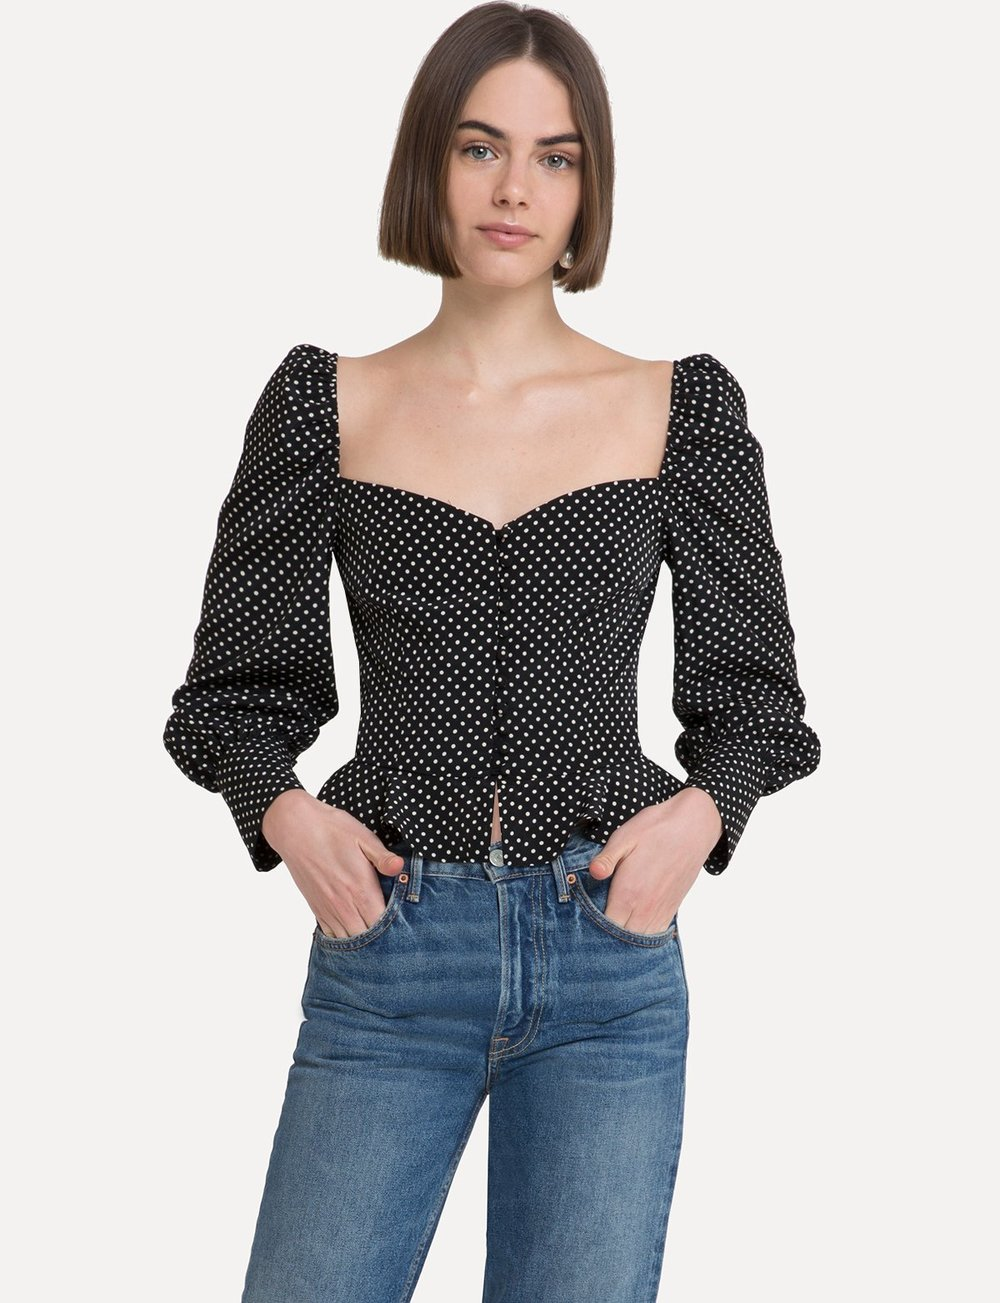 - VALENTINA BLACK POLKA DOT TOP / Pixie Market $125